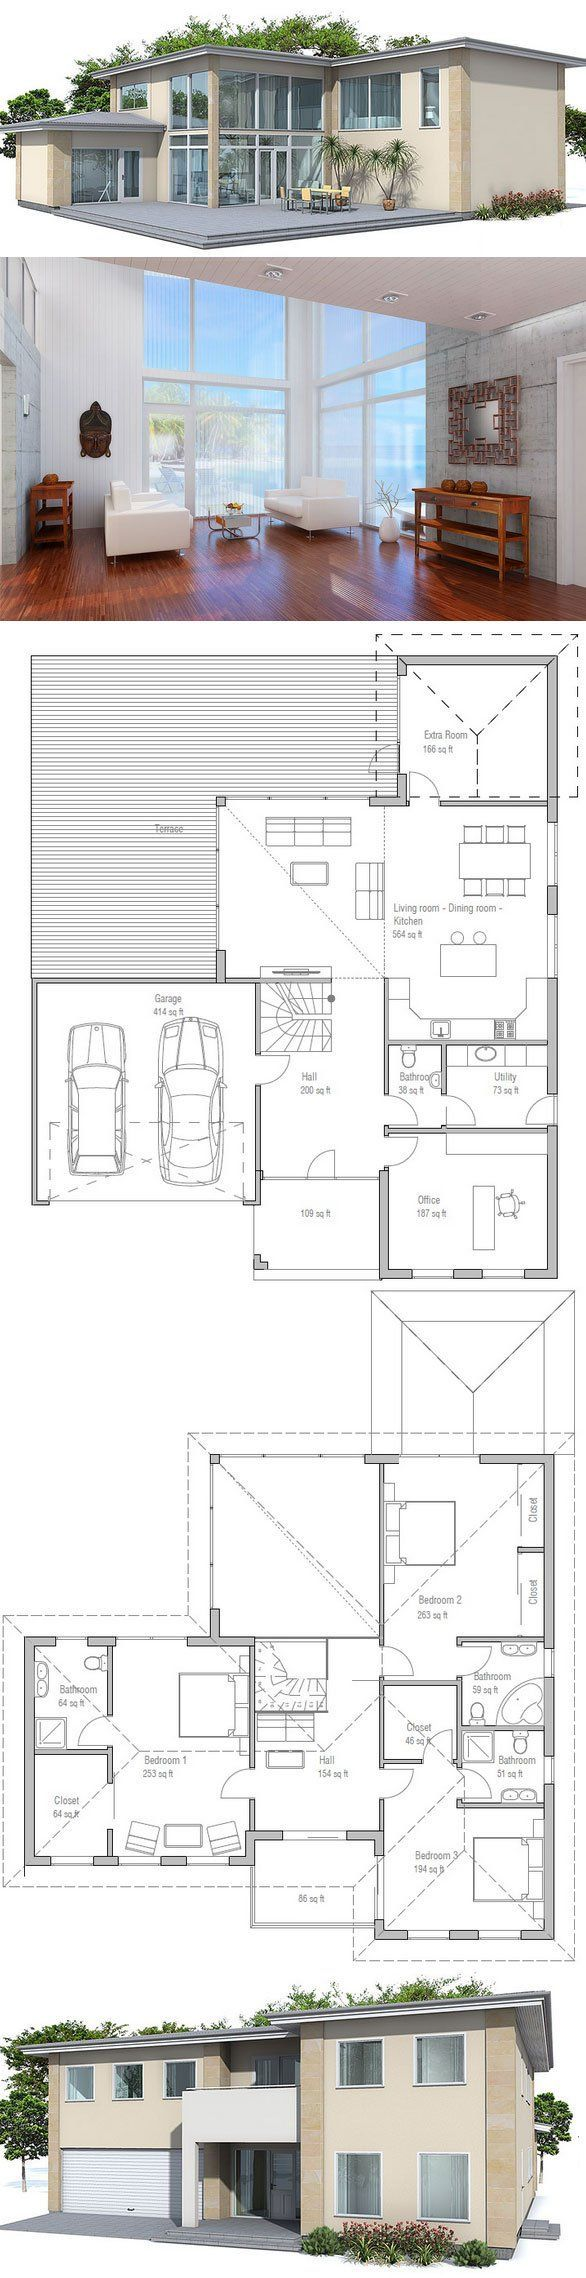 Bauzeichnung Garage large modern house plan four bedrooms two living areas two car